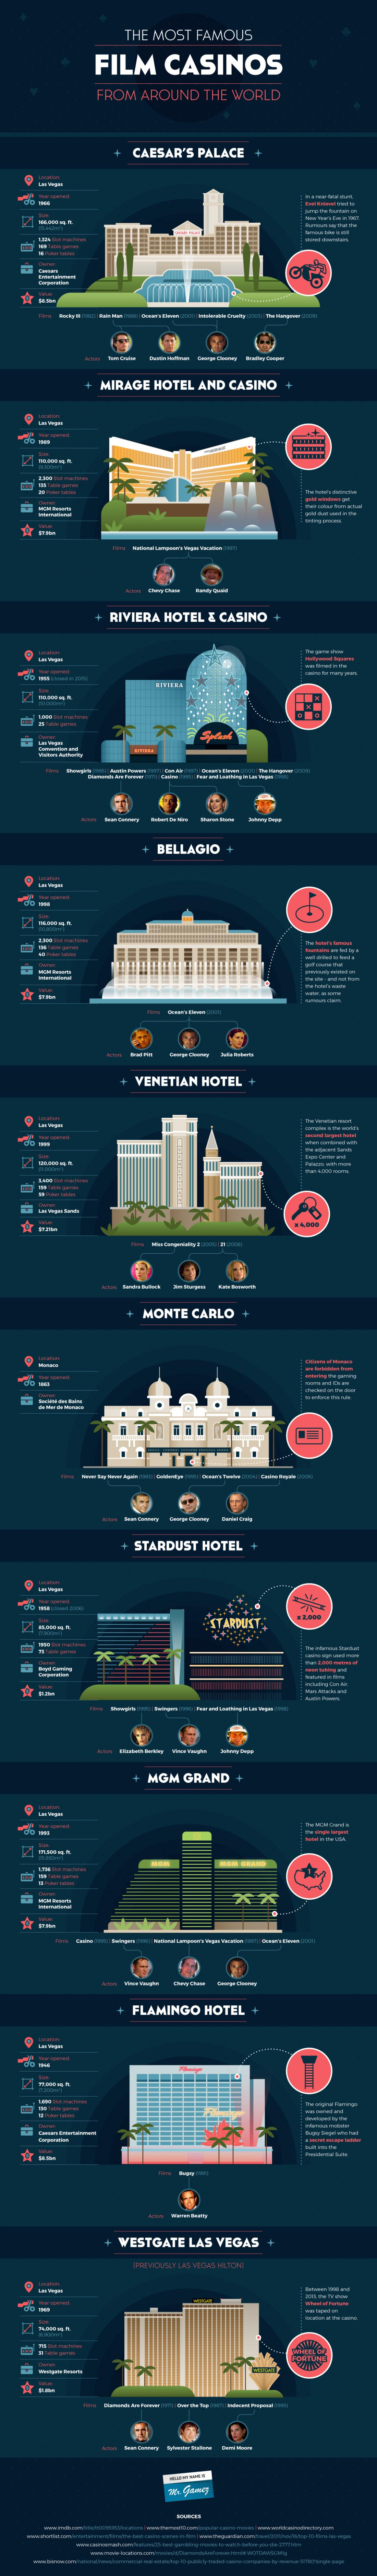 The Most Famous Film Casinos From Around The World